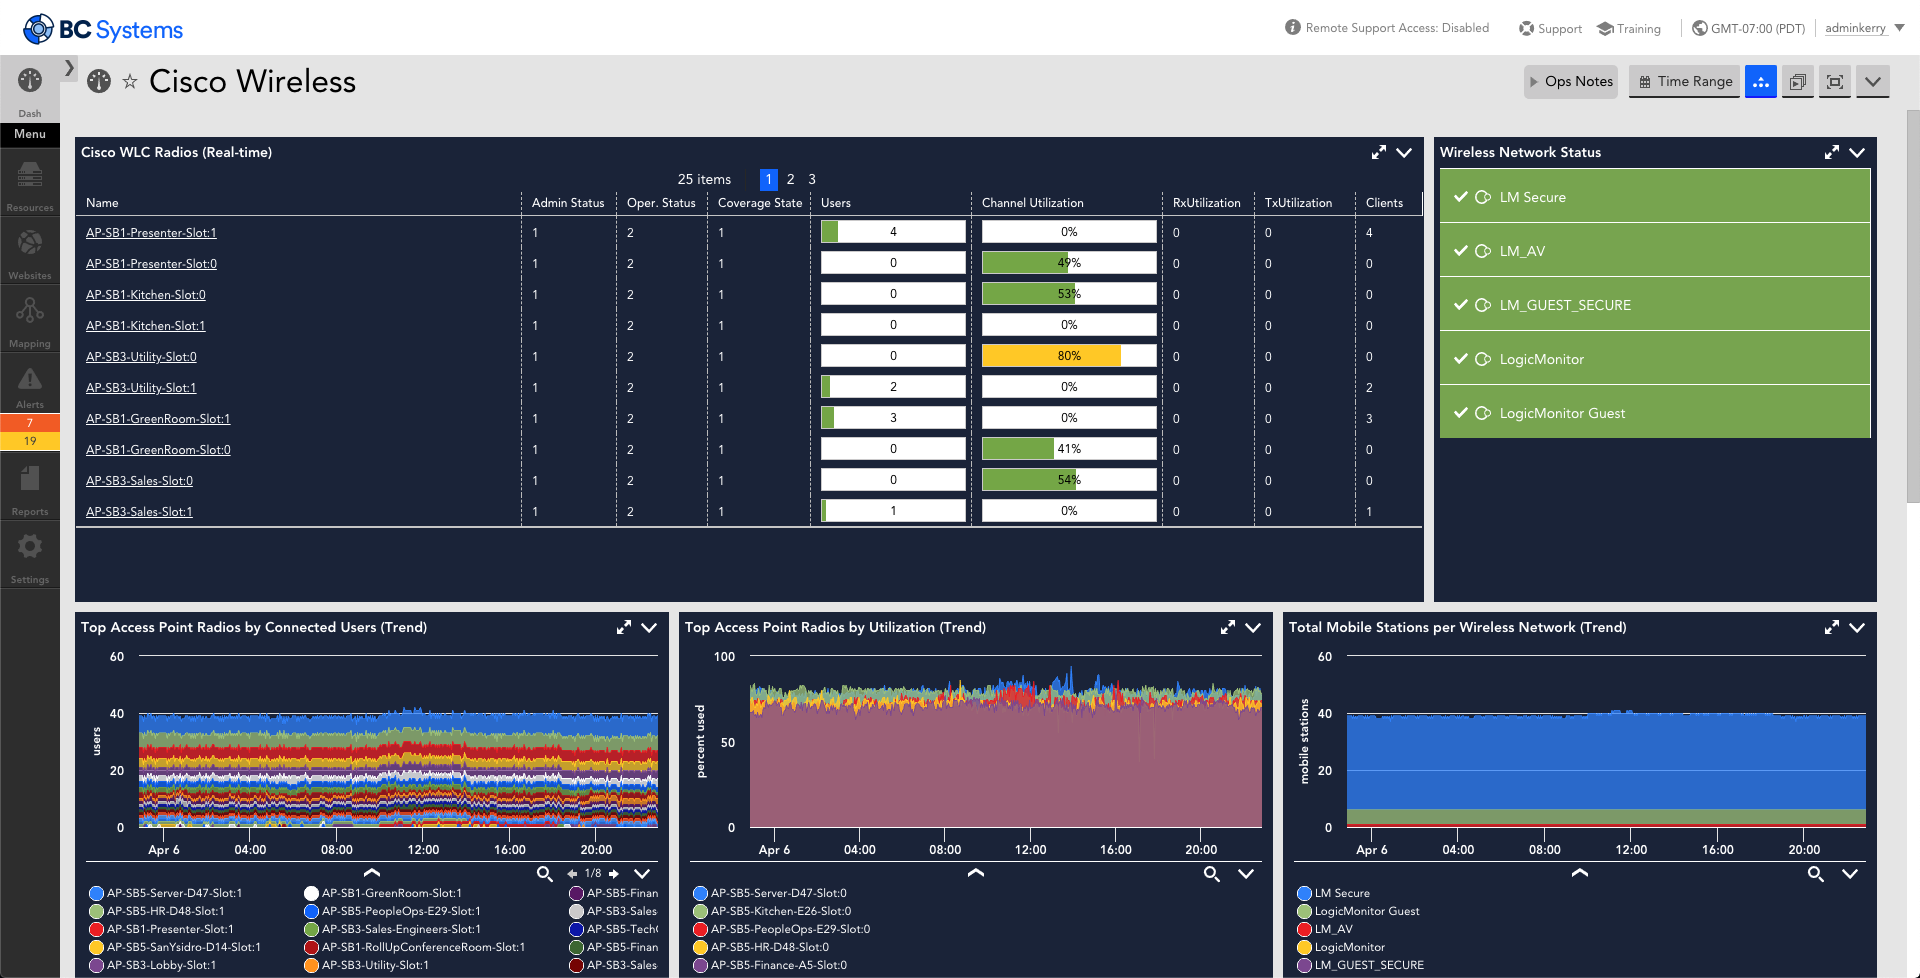 http://This%20dashboard%20provides%20an%20a%20listing%20of%20various%20metrics%20that%20are%20monitored%20for%20Cisco%20Wireless%20APs.%20The%20metrics%20displayed%20are%20status,%20real-time%20radios,%20connected%20users%20over%20time,%20utilization%20over%20time,%20stations%20per%20wireless%20network%20over%20time